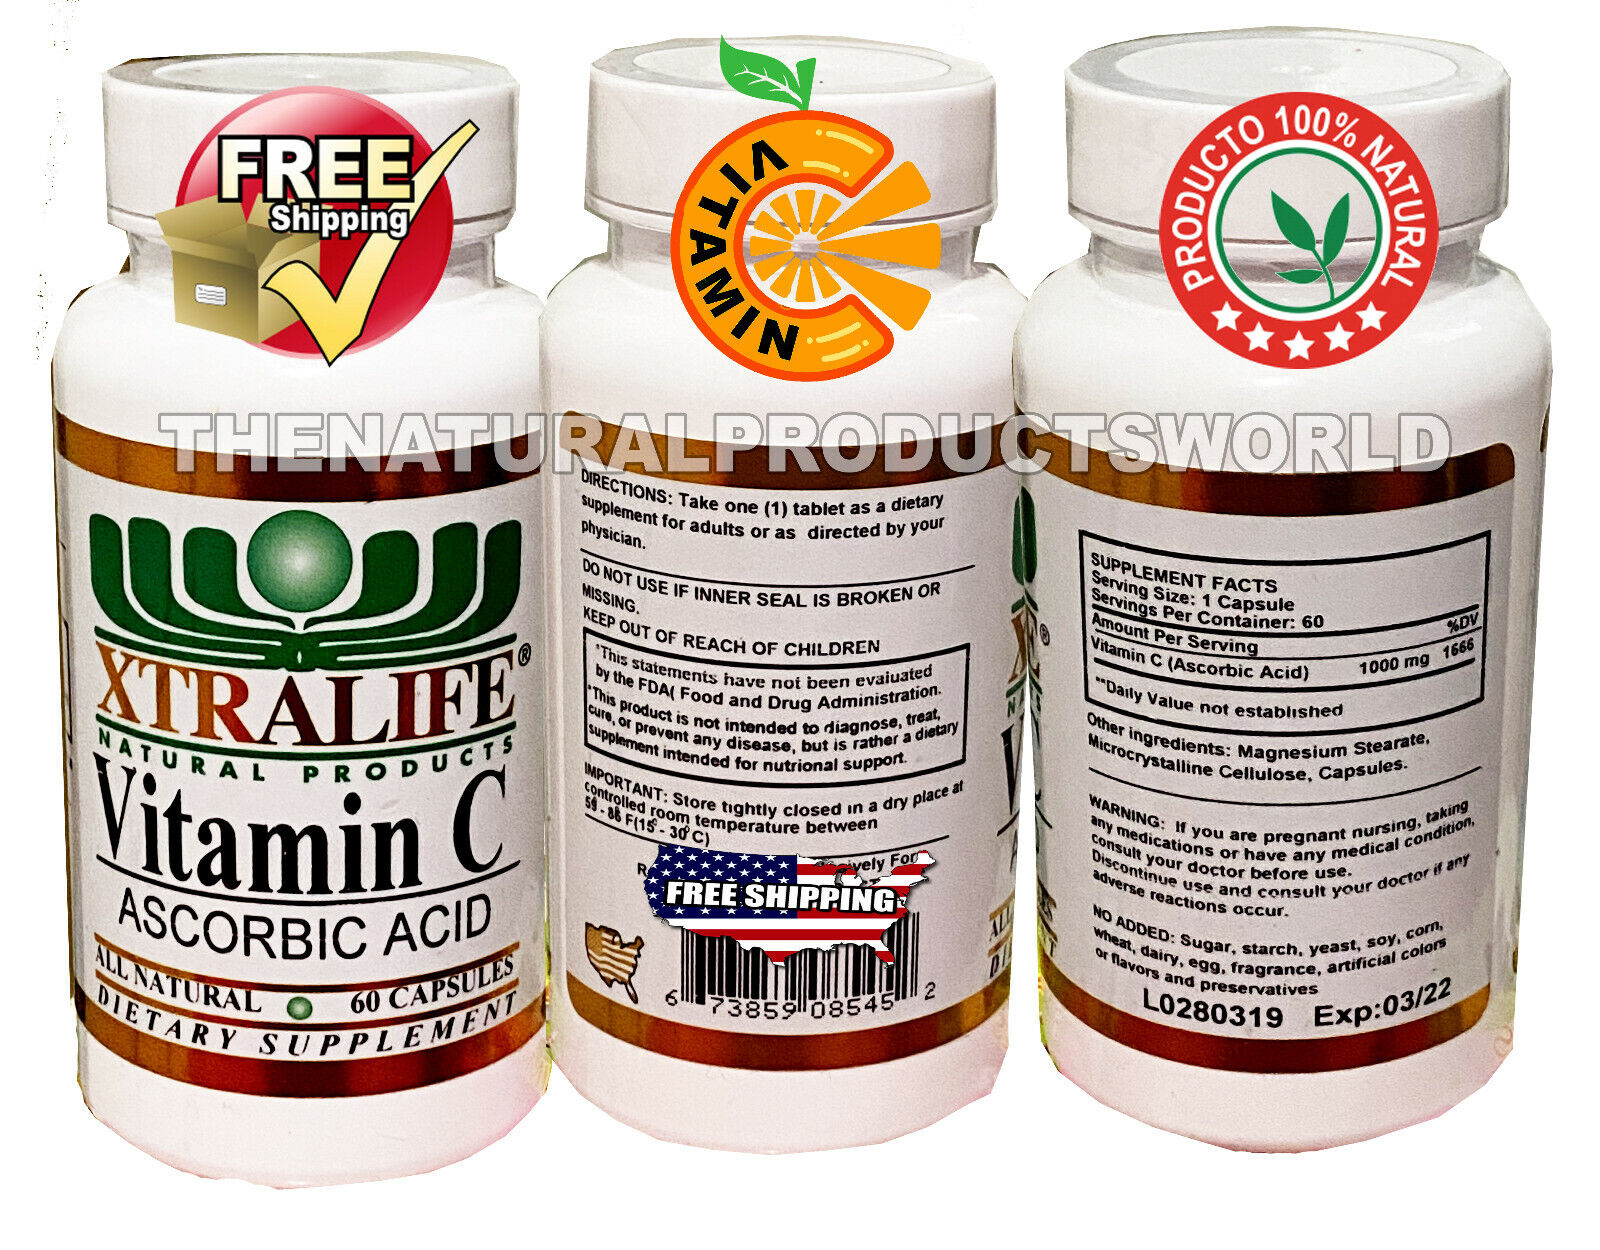 Pure Vitamin C 1,000MG Support Healthy Immune System, Antioxidant, 1 Pack